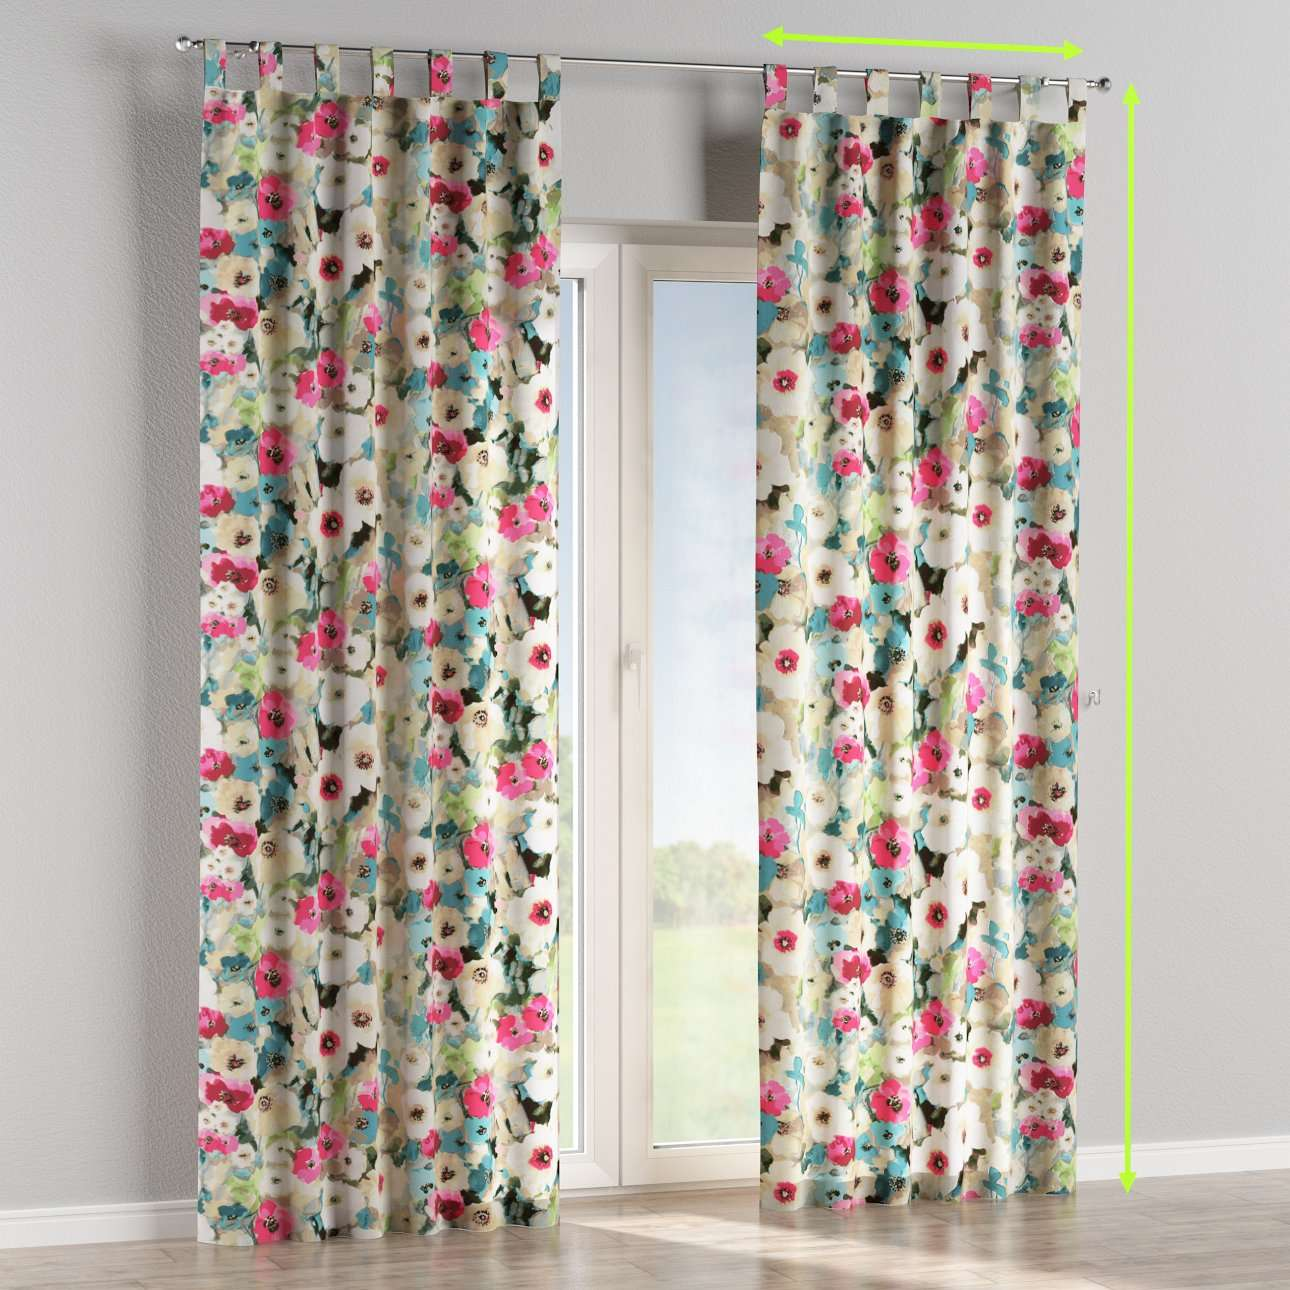 Tab top curtains in collection Monet, fabric: 140-08